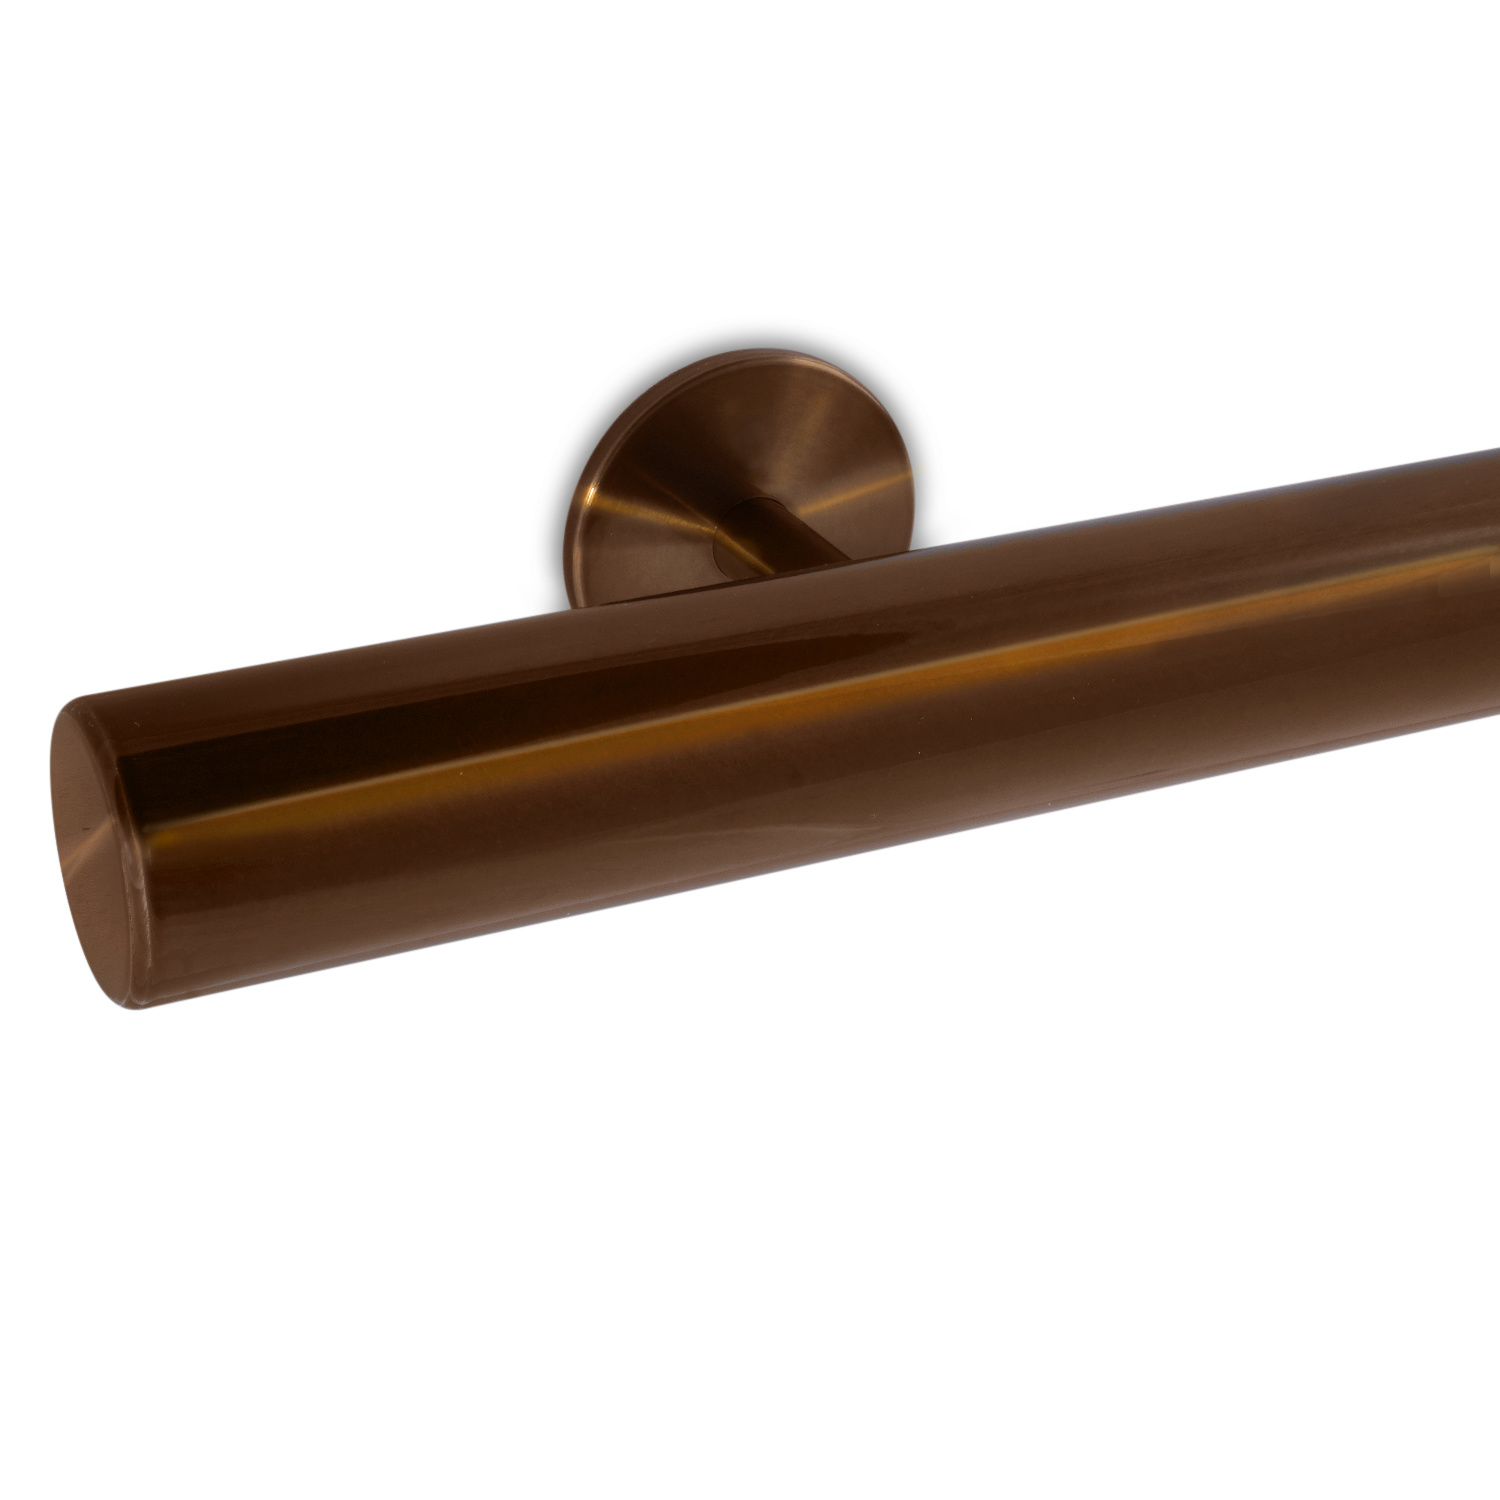 Trapleuning brons gecoat rond incl. dragers TYPE 5 - messing - goud - brons poedercoating